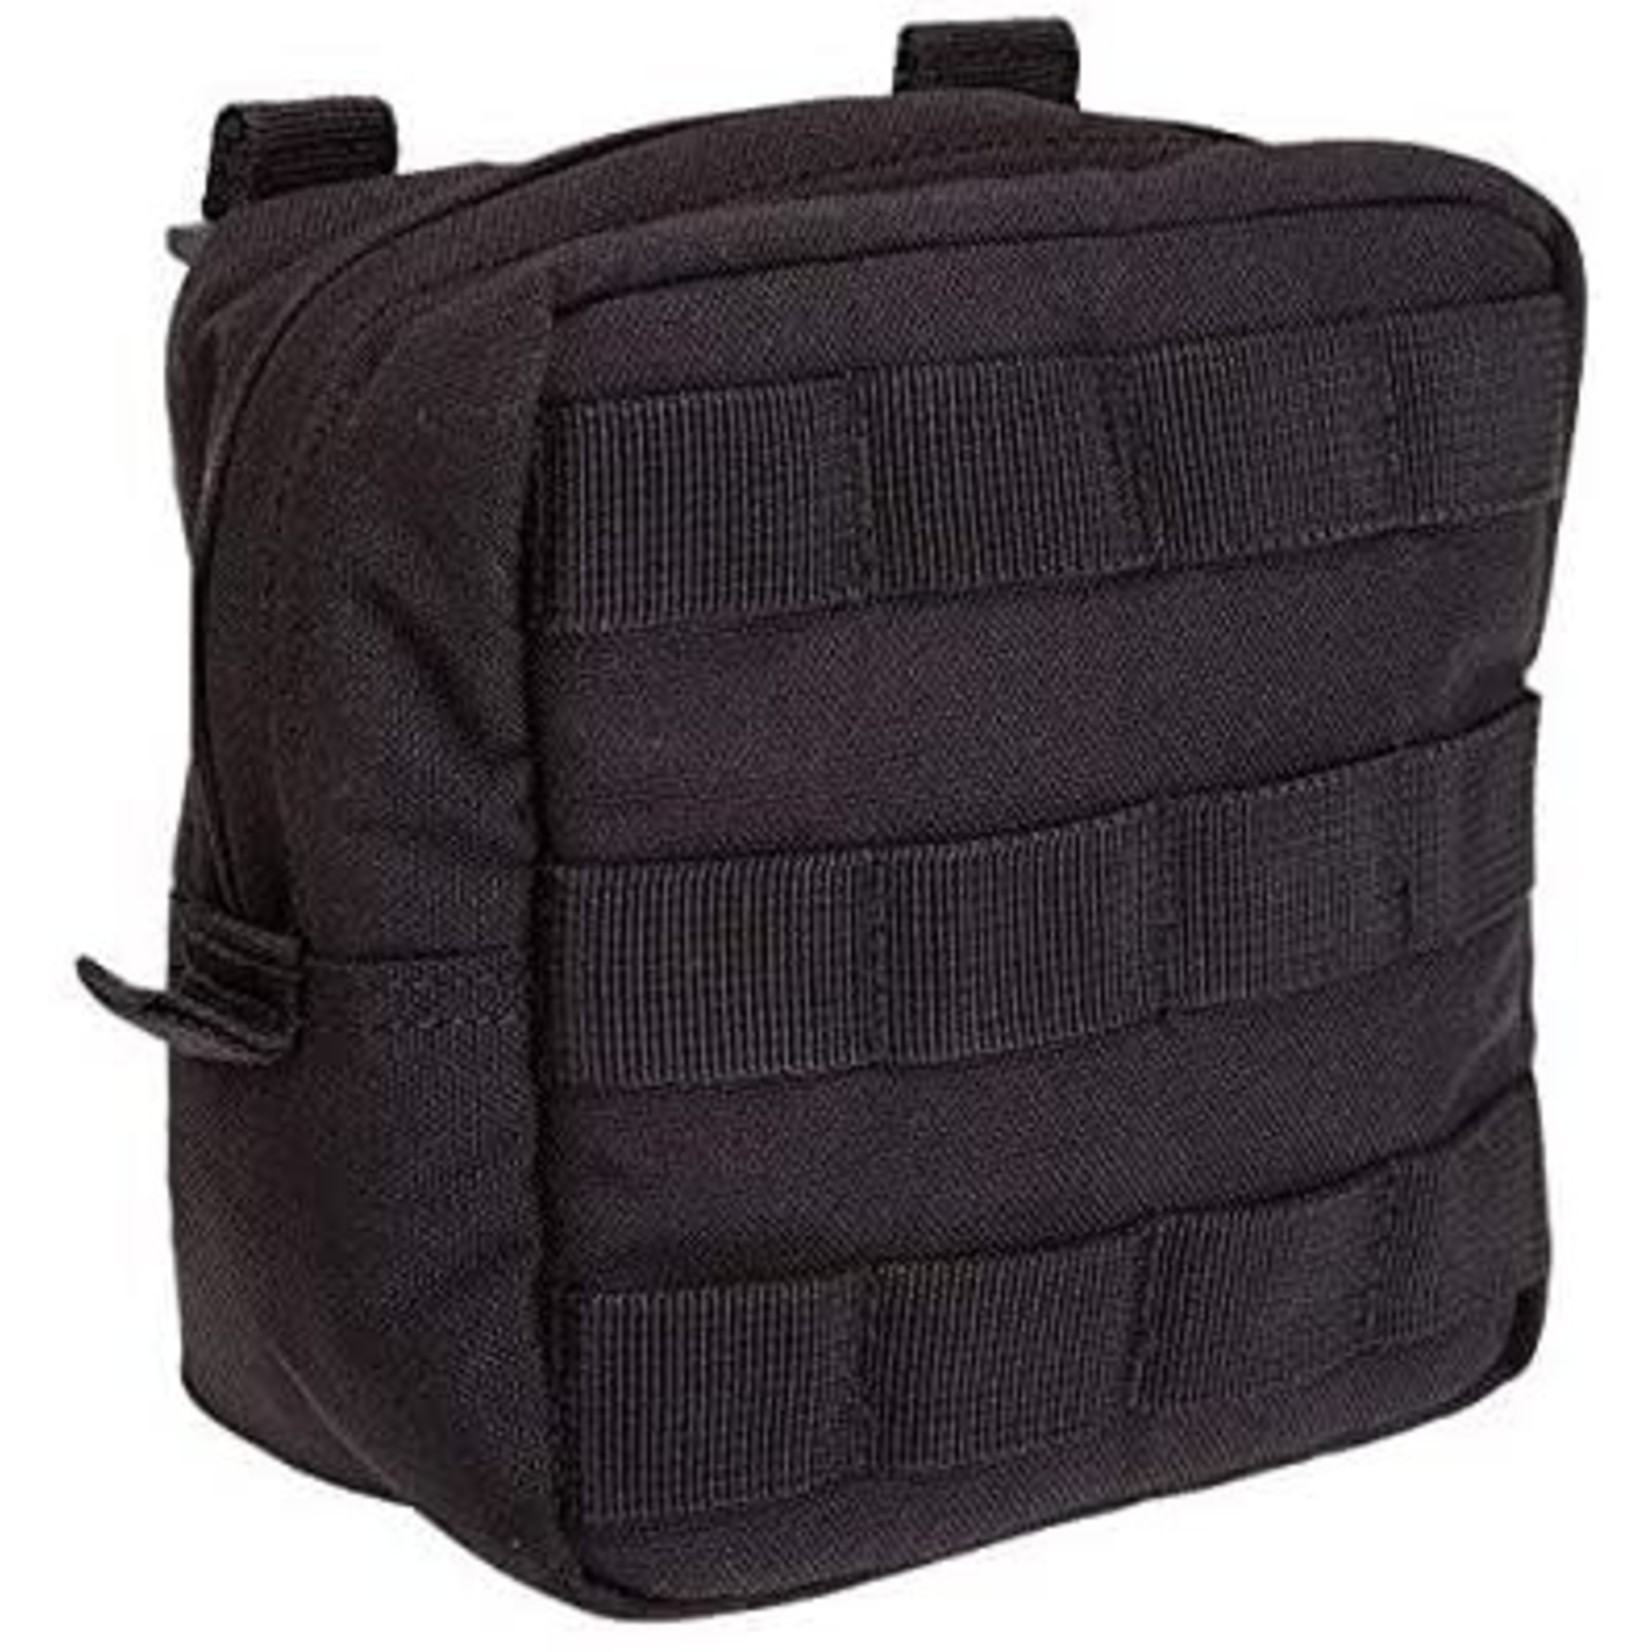 5.11 Tactical 5.11 6.6 Pouch